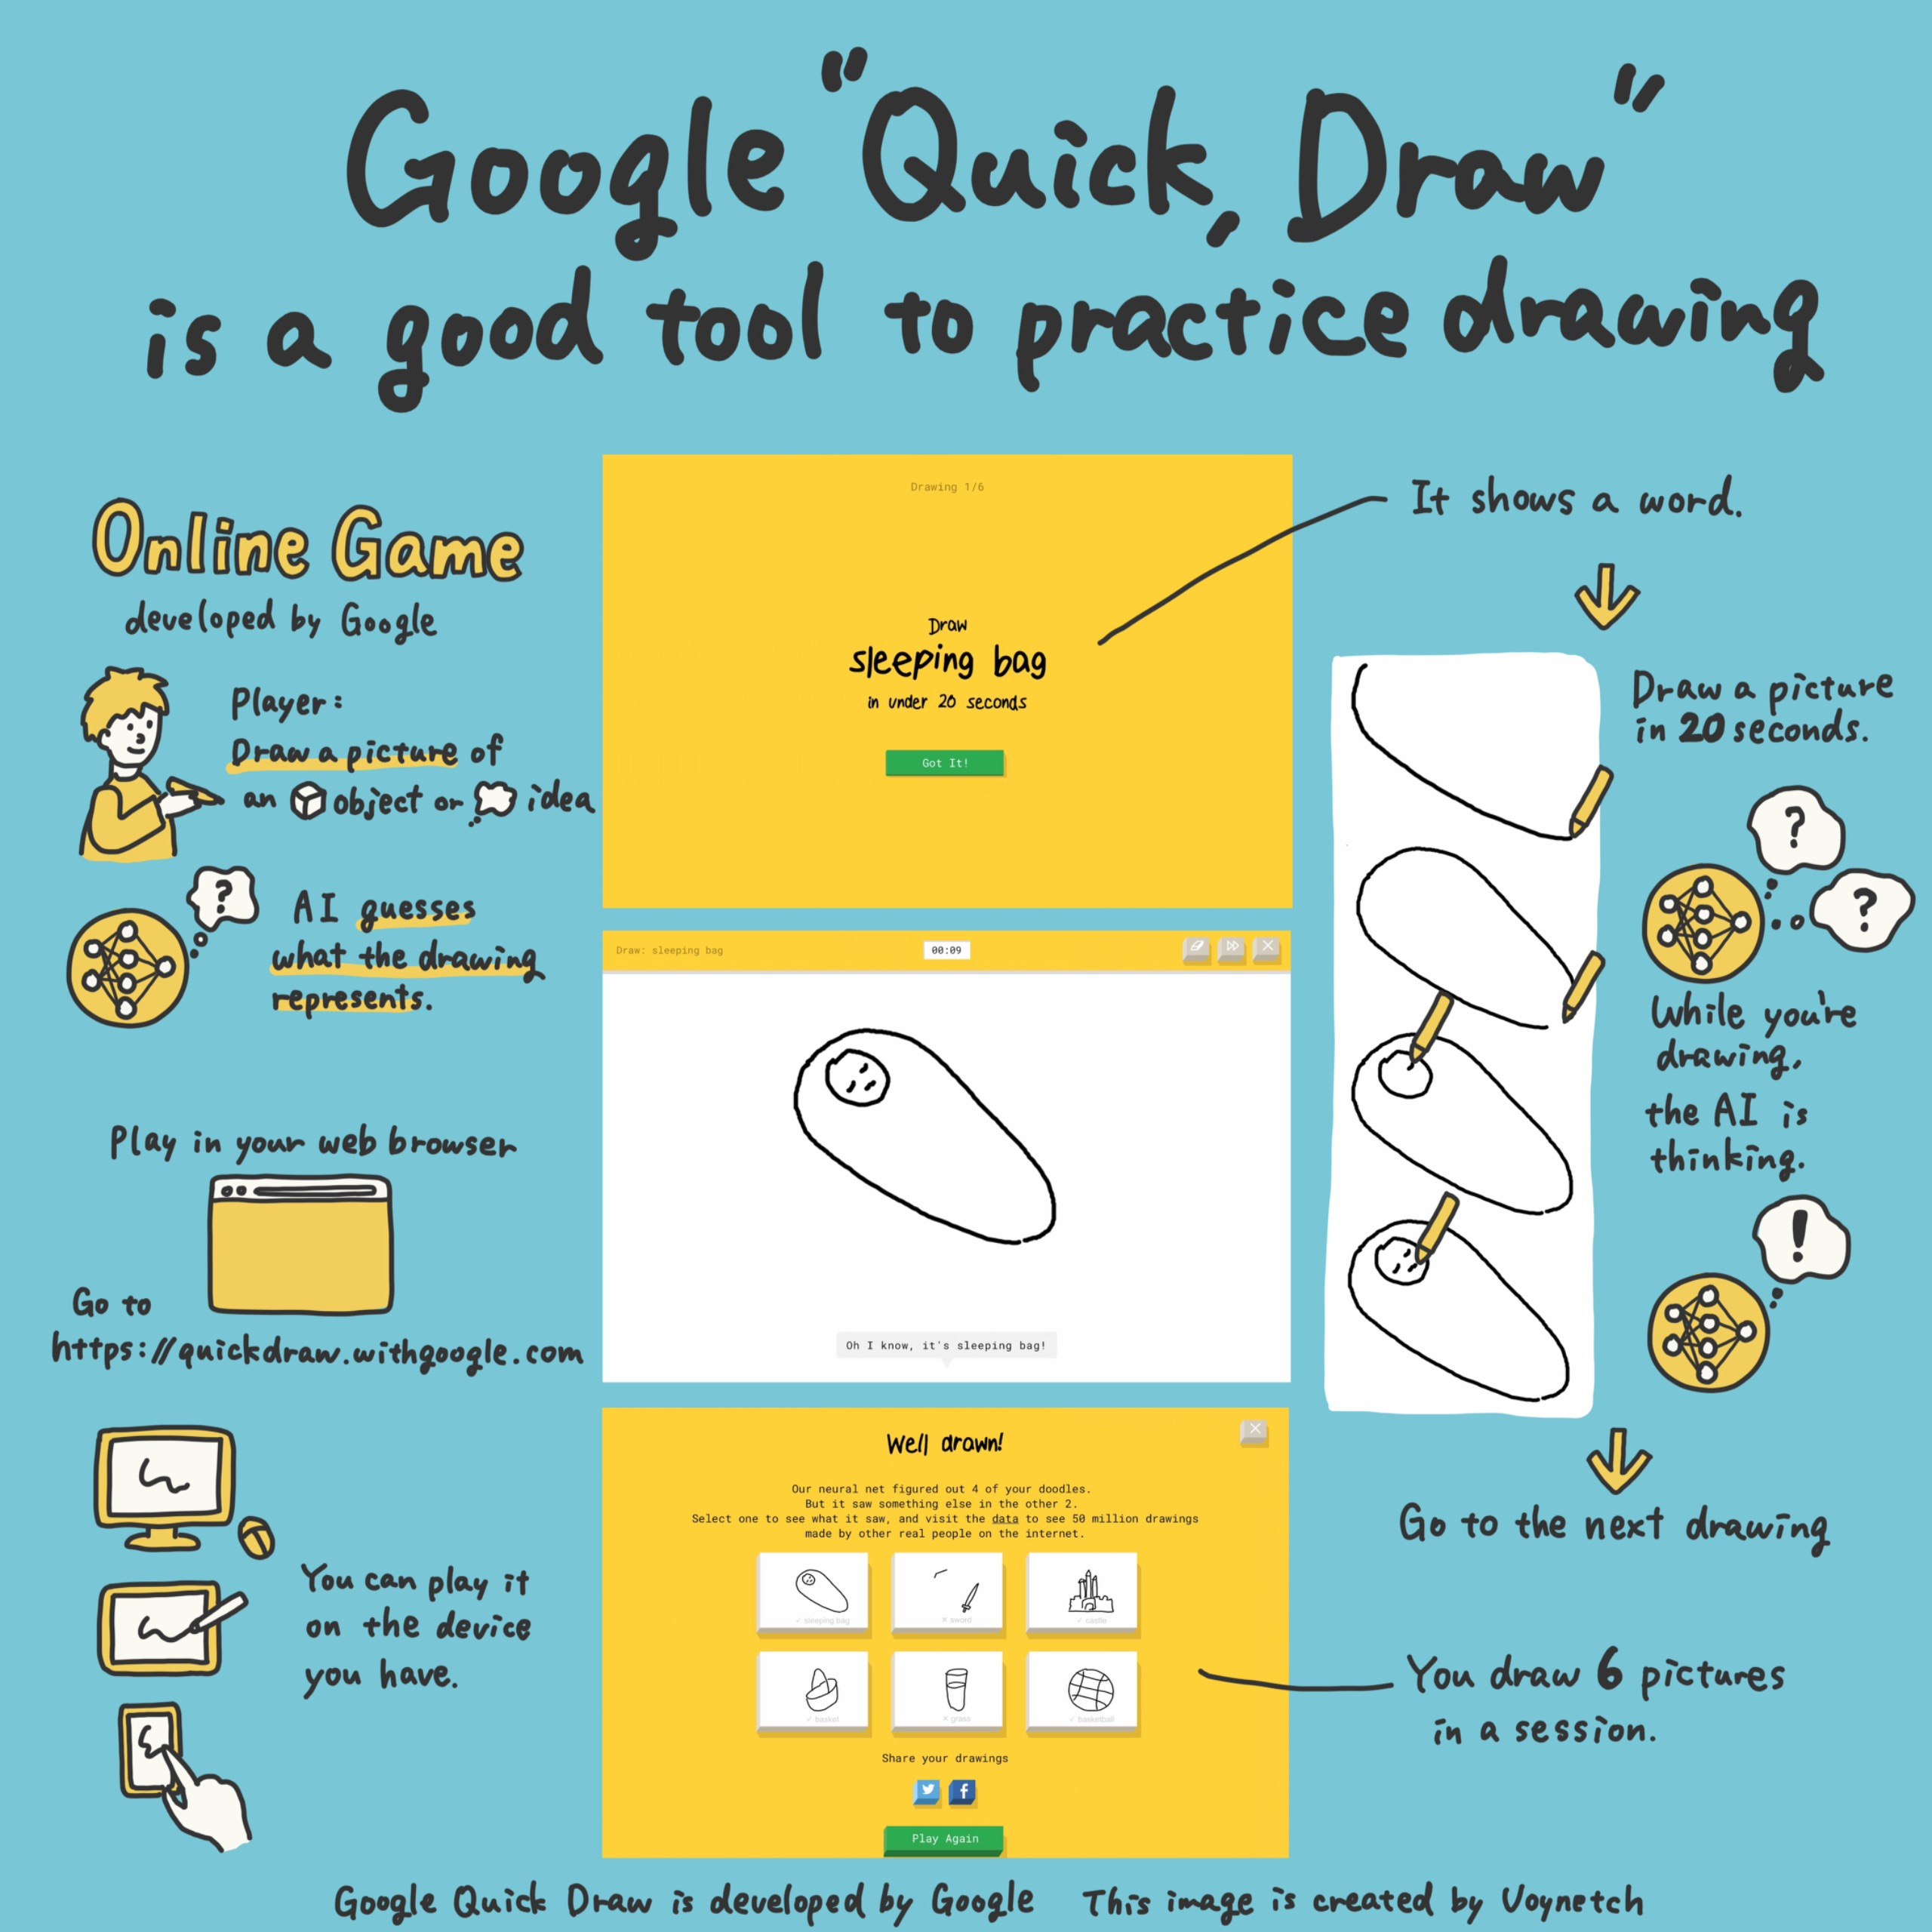 """Google """"Quick, Draw!"""" is a good tool to practice drawing Image (1/2)"""